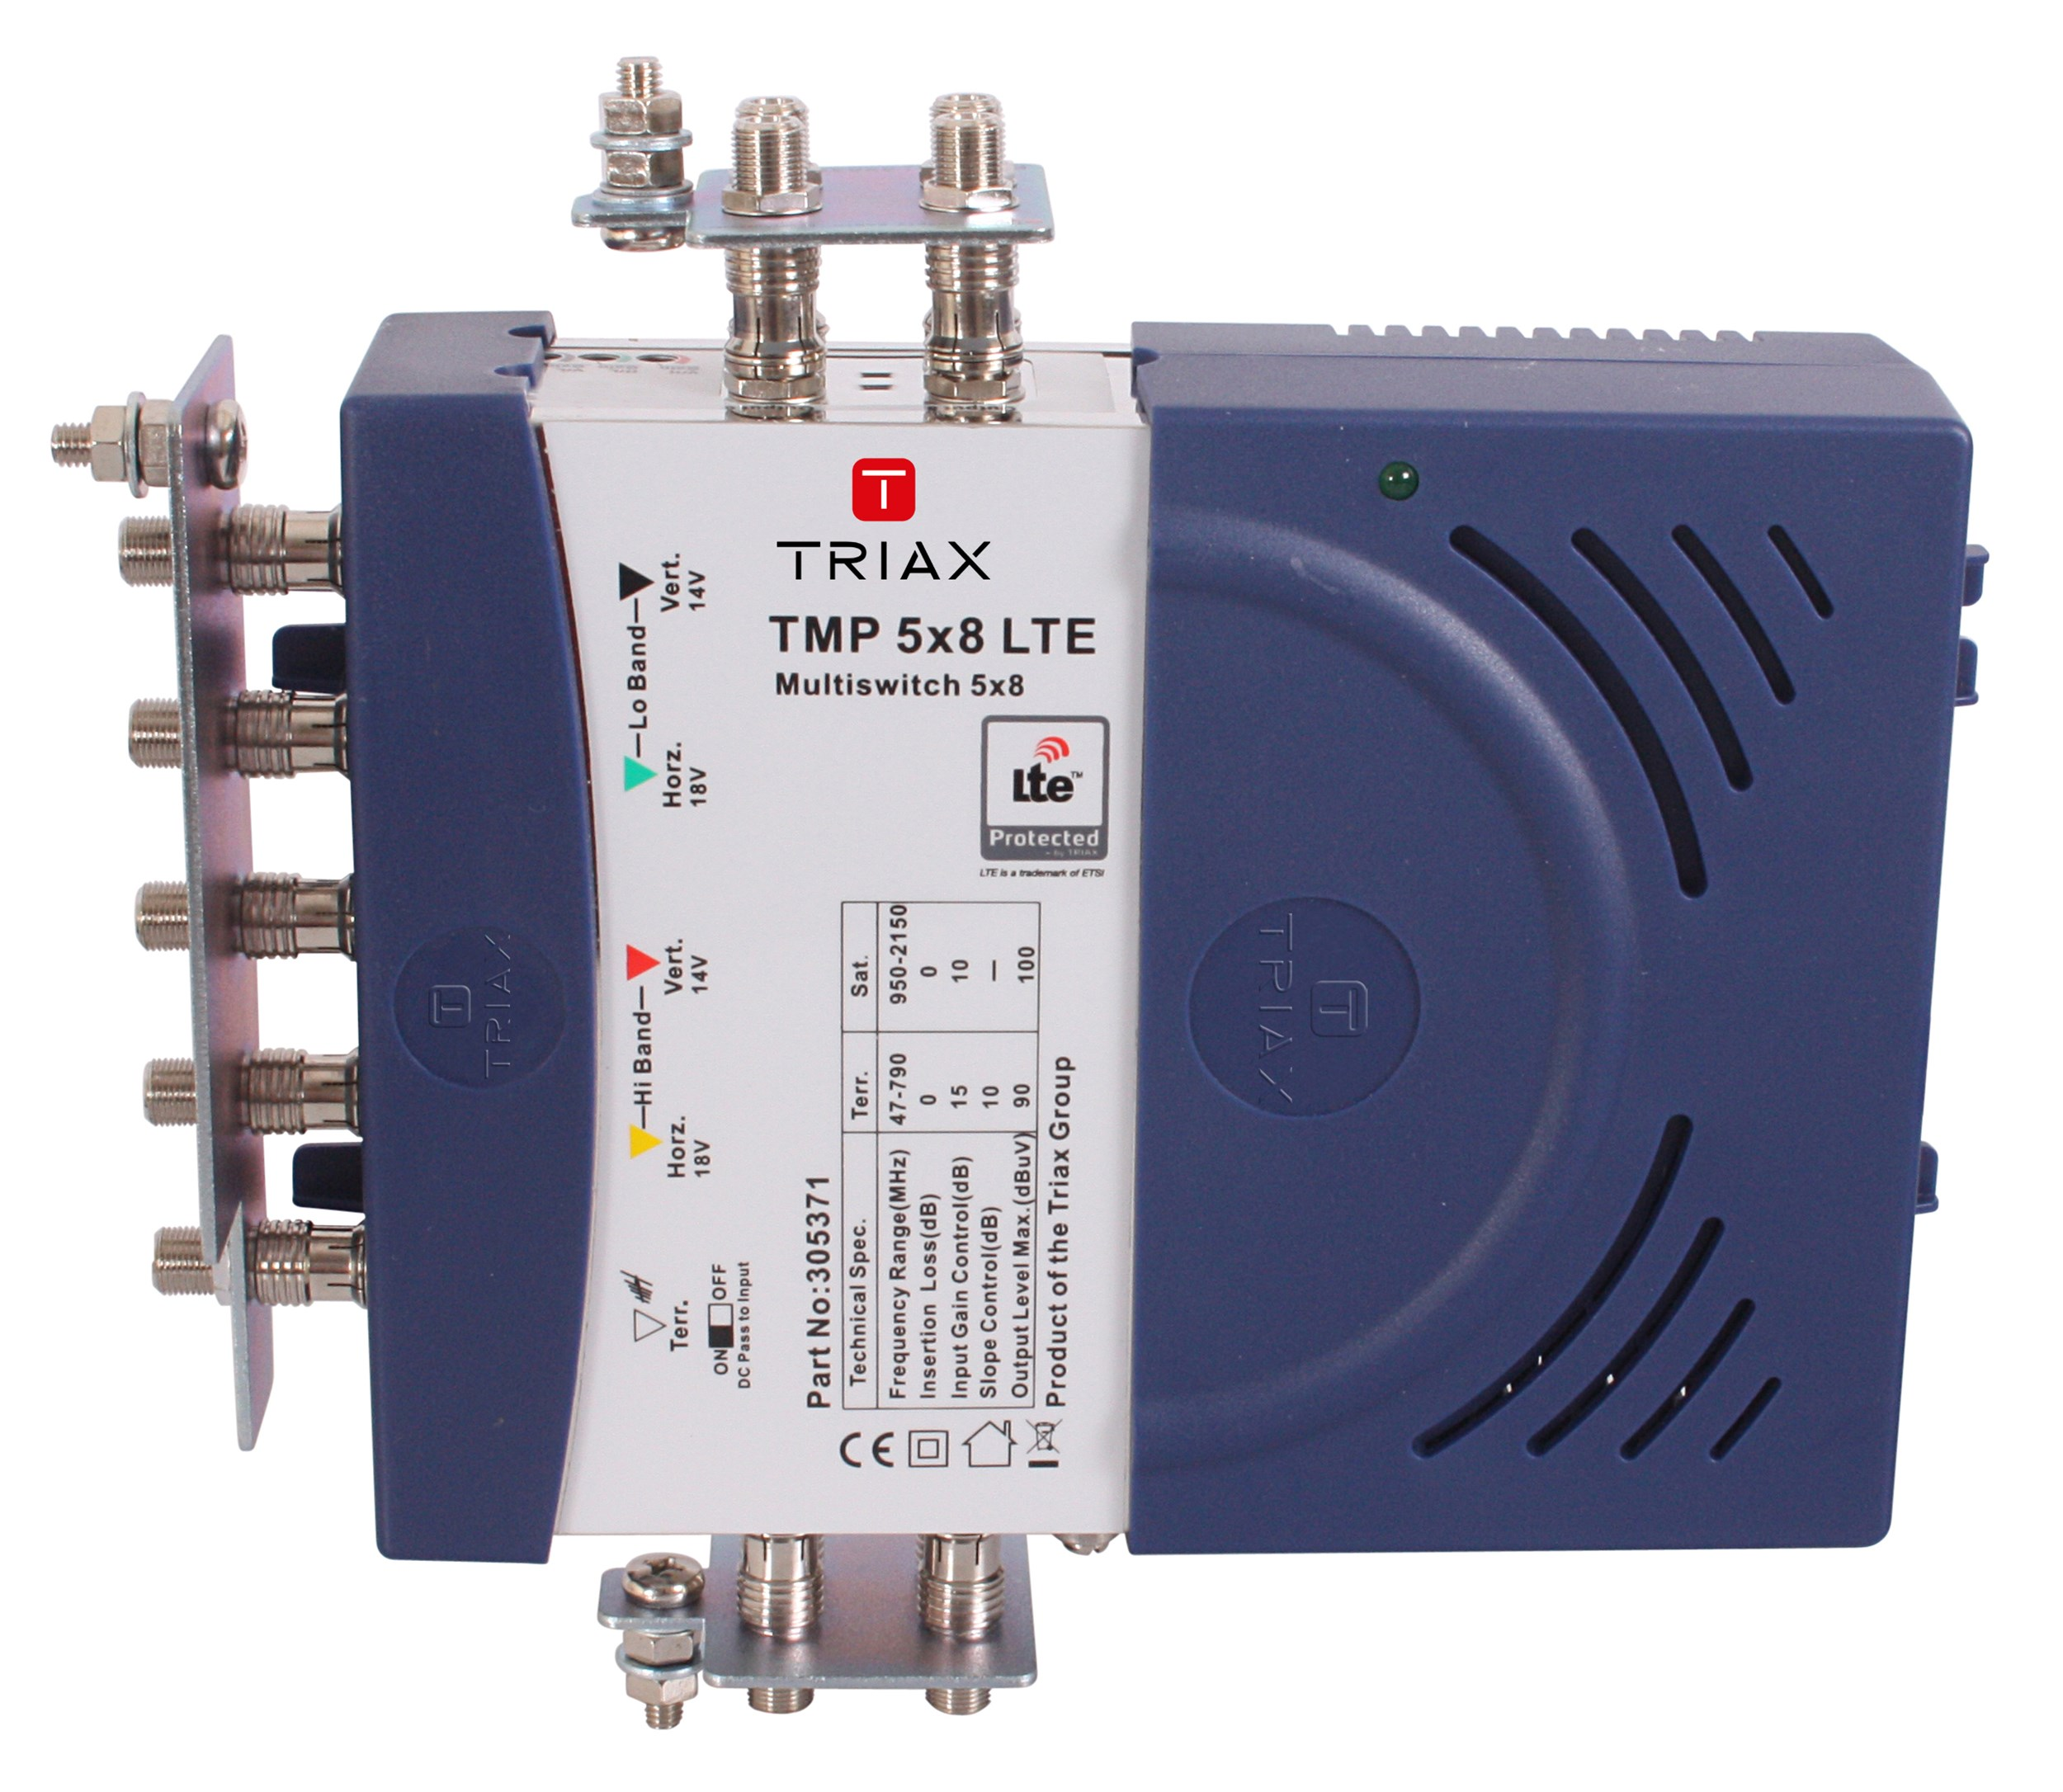 Triax Multiswitches Multiswitch Light Wiring Diagram Tmp 5x8 Stand Alone 4sat 1ter Psu 8out Lte Protected